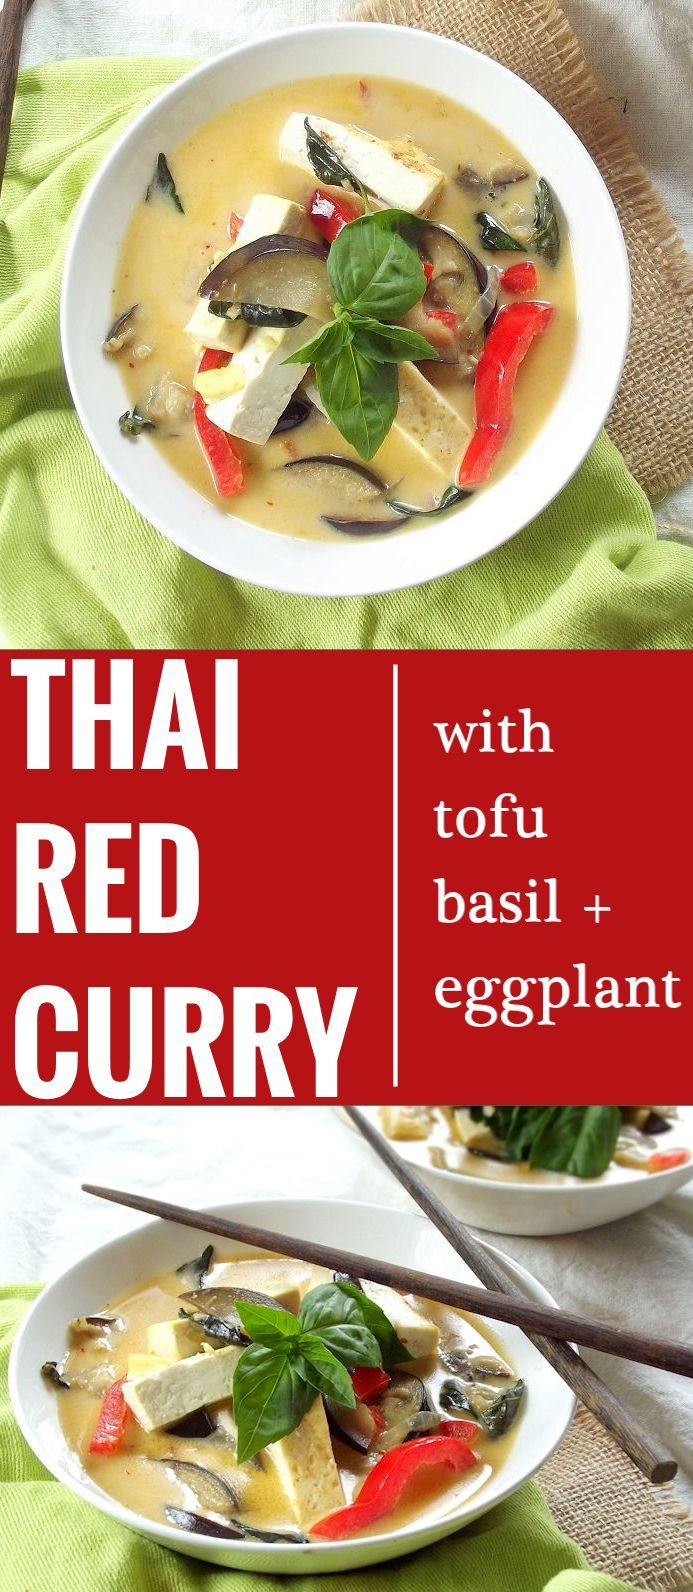 Best 25+ Thai red curry ideas on Pinterest | Thai red ...